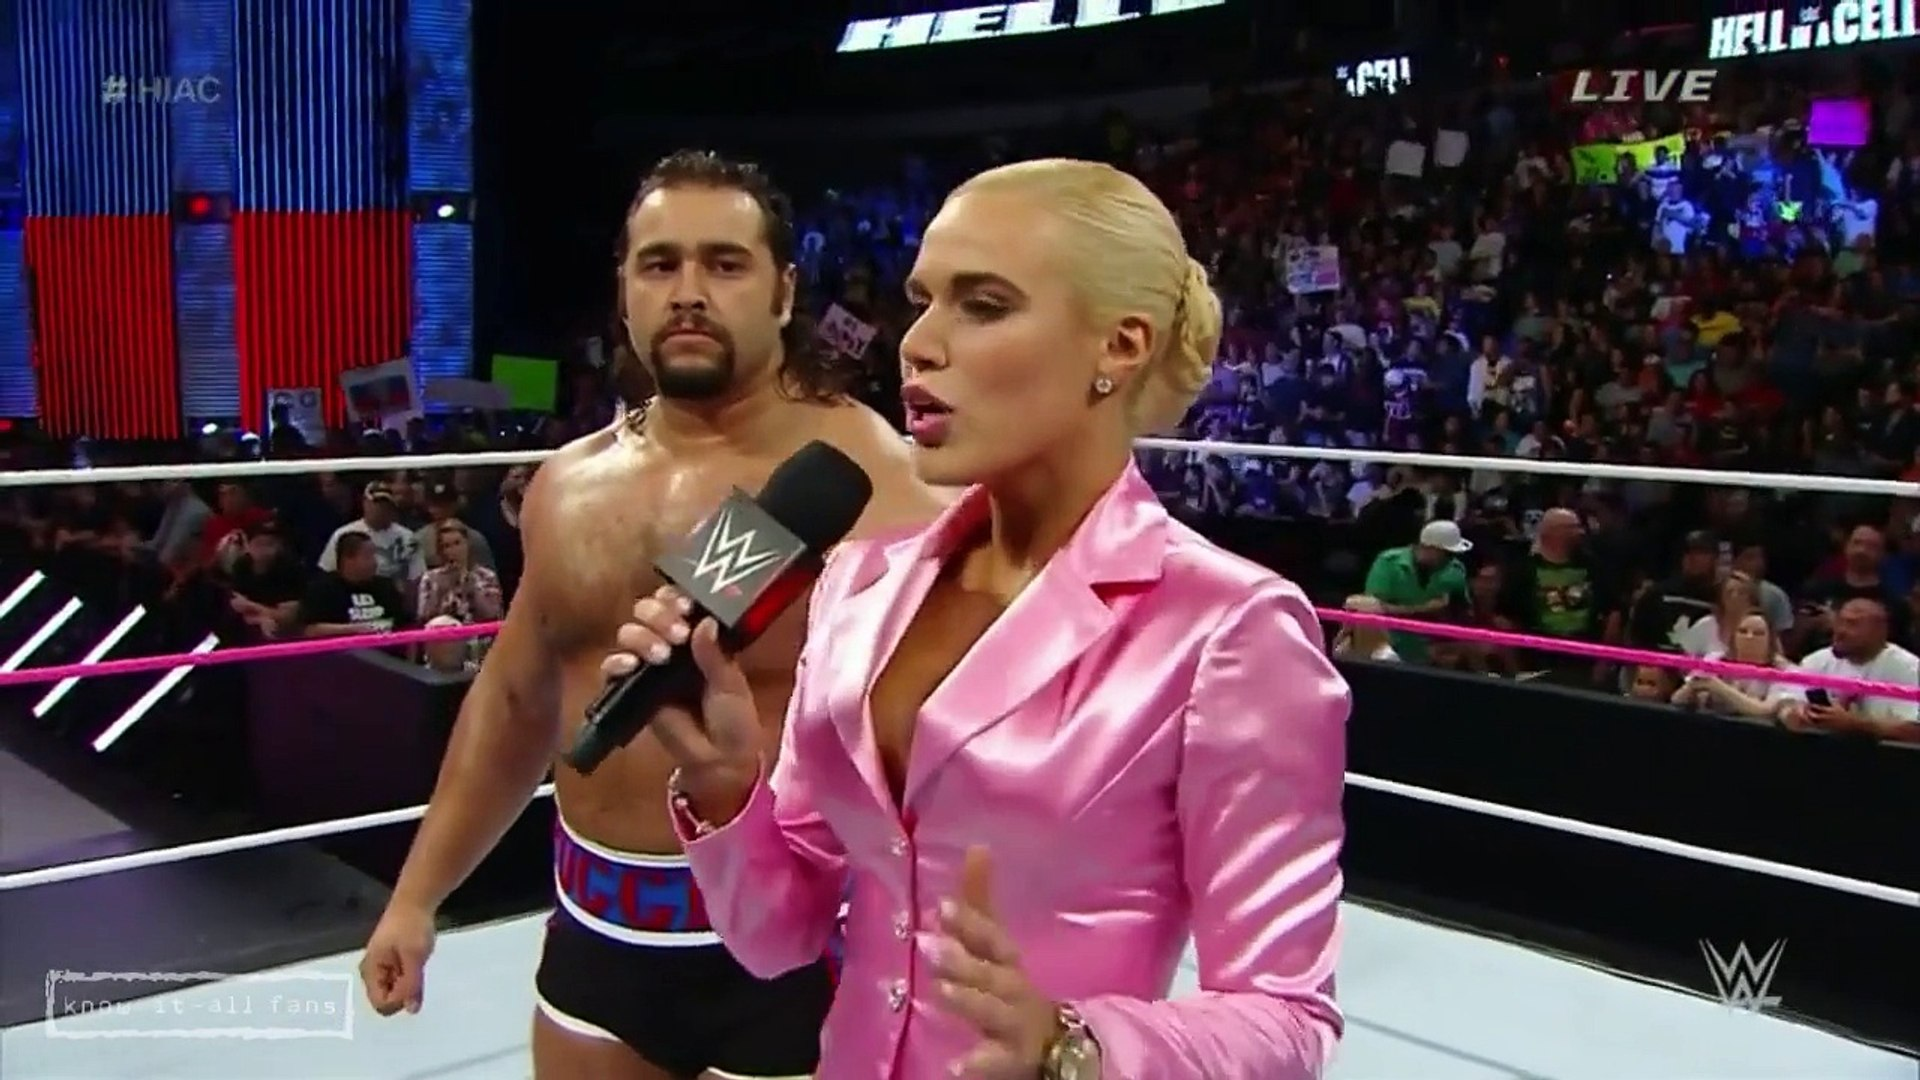 WWE Hell In A Cell 10/26/14 - Big Show vs Rusev - [Know-It-All Fans] Live Commentary